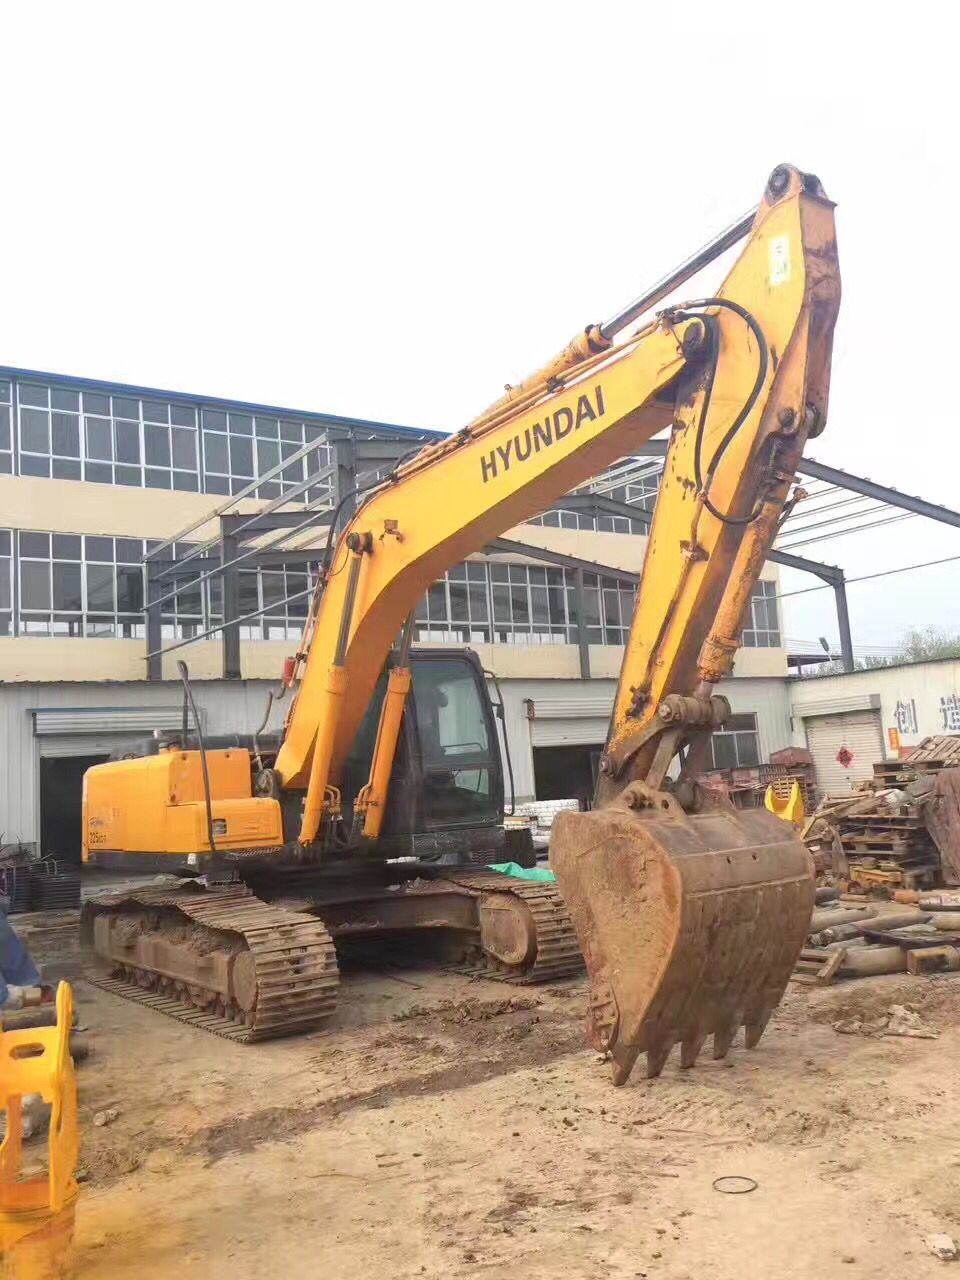 Hot Sale Hyundai Good Working Condition Used Hydraulic Crawler Excavator Hyundai R225-7 (construction equipment2011)